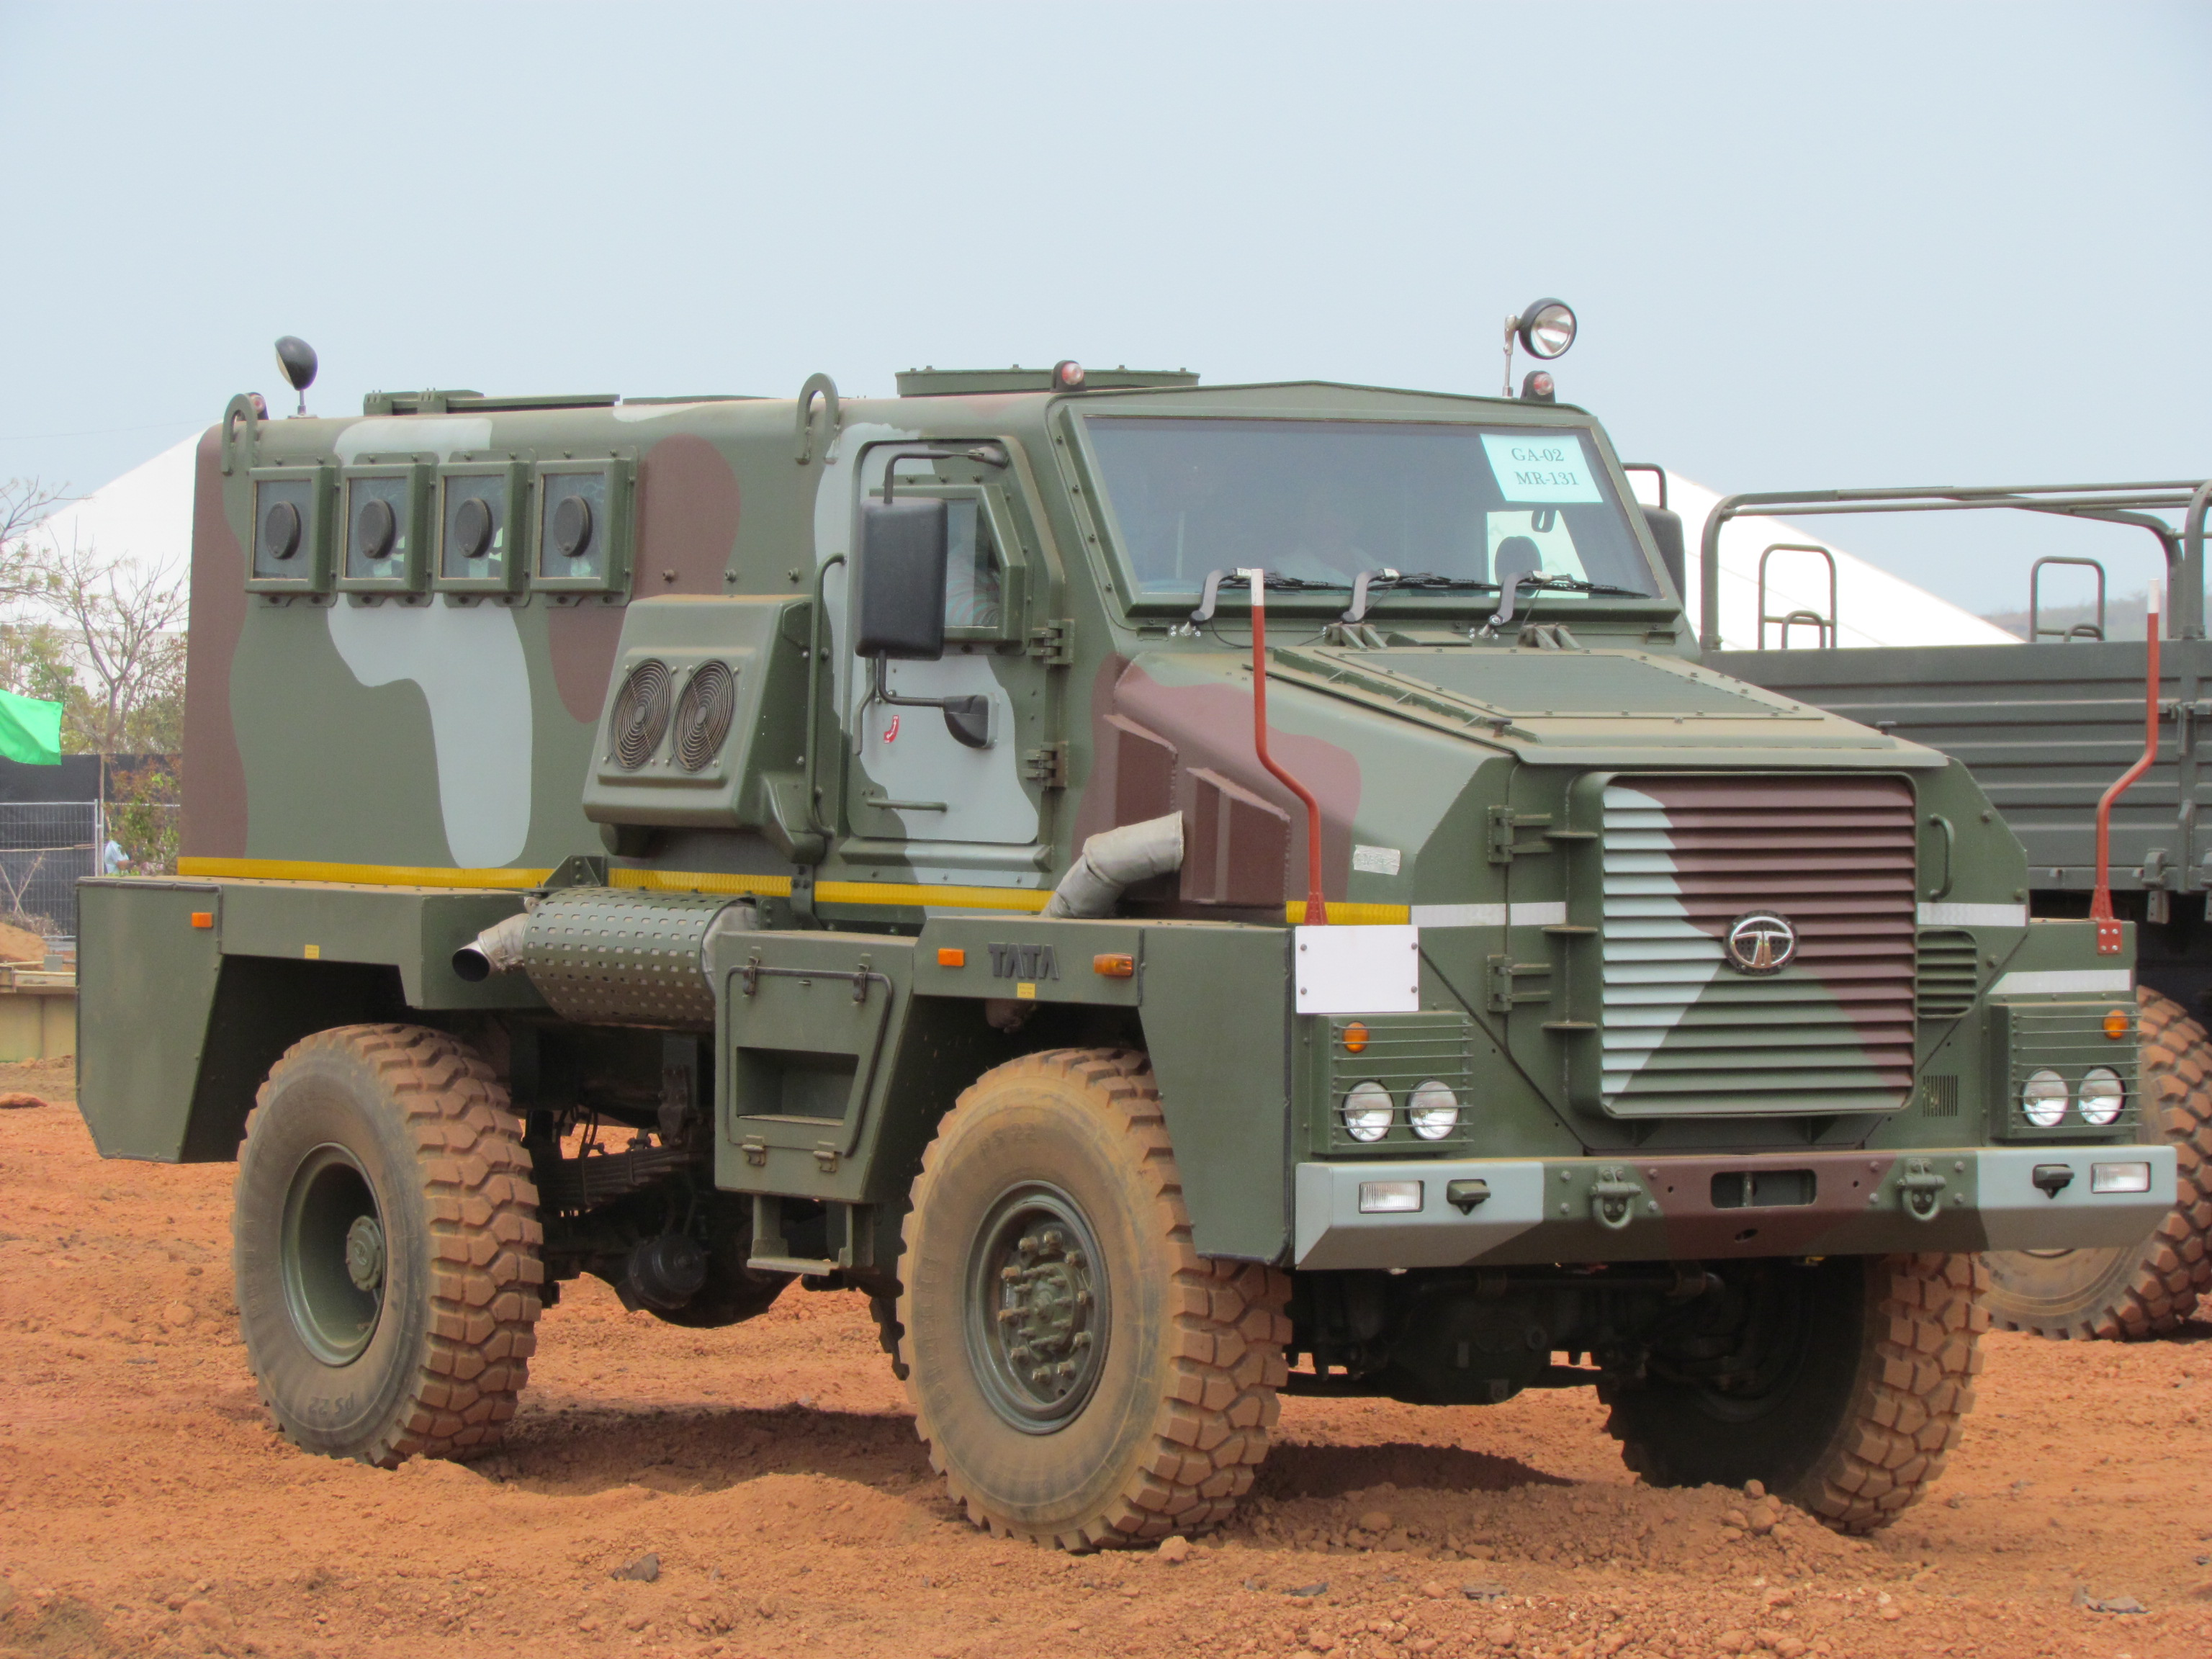 Tata's_Armored_Personnel_Carrier